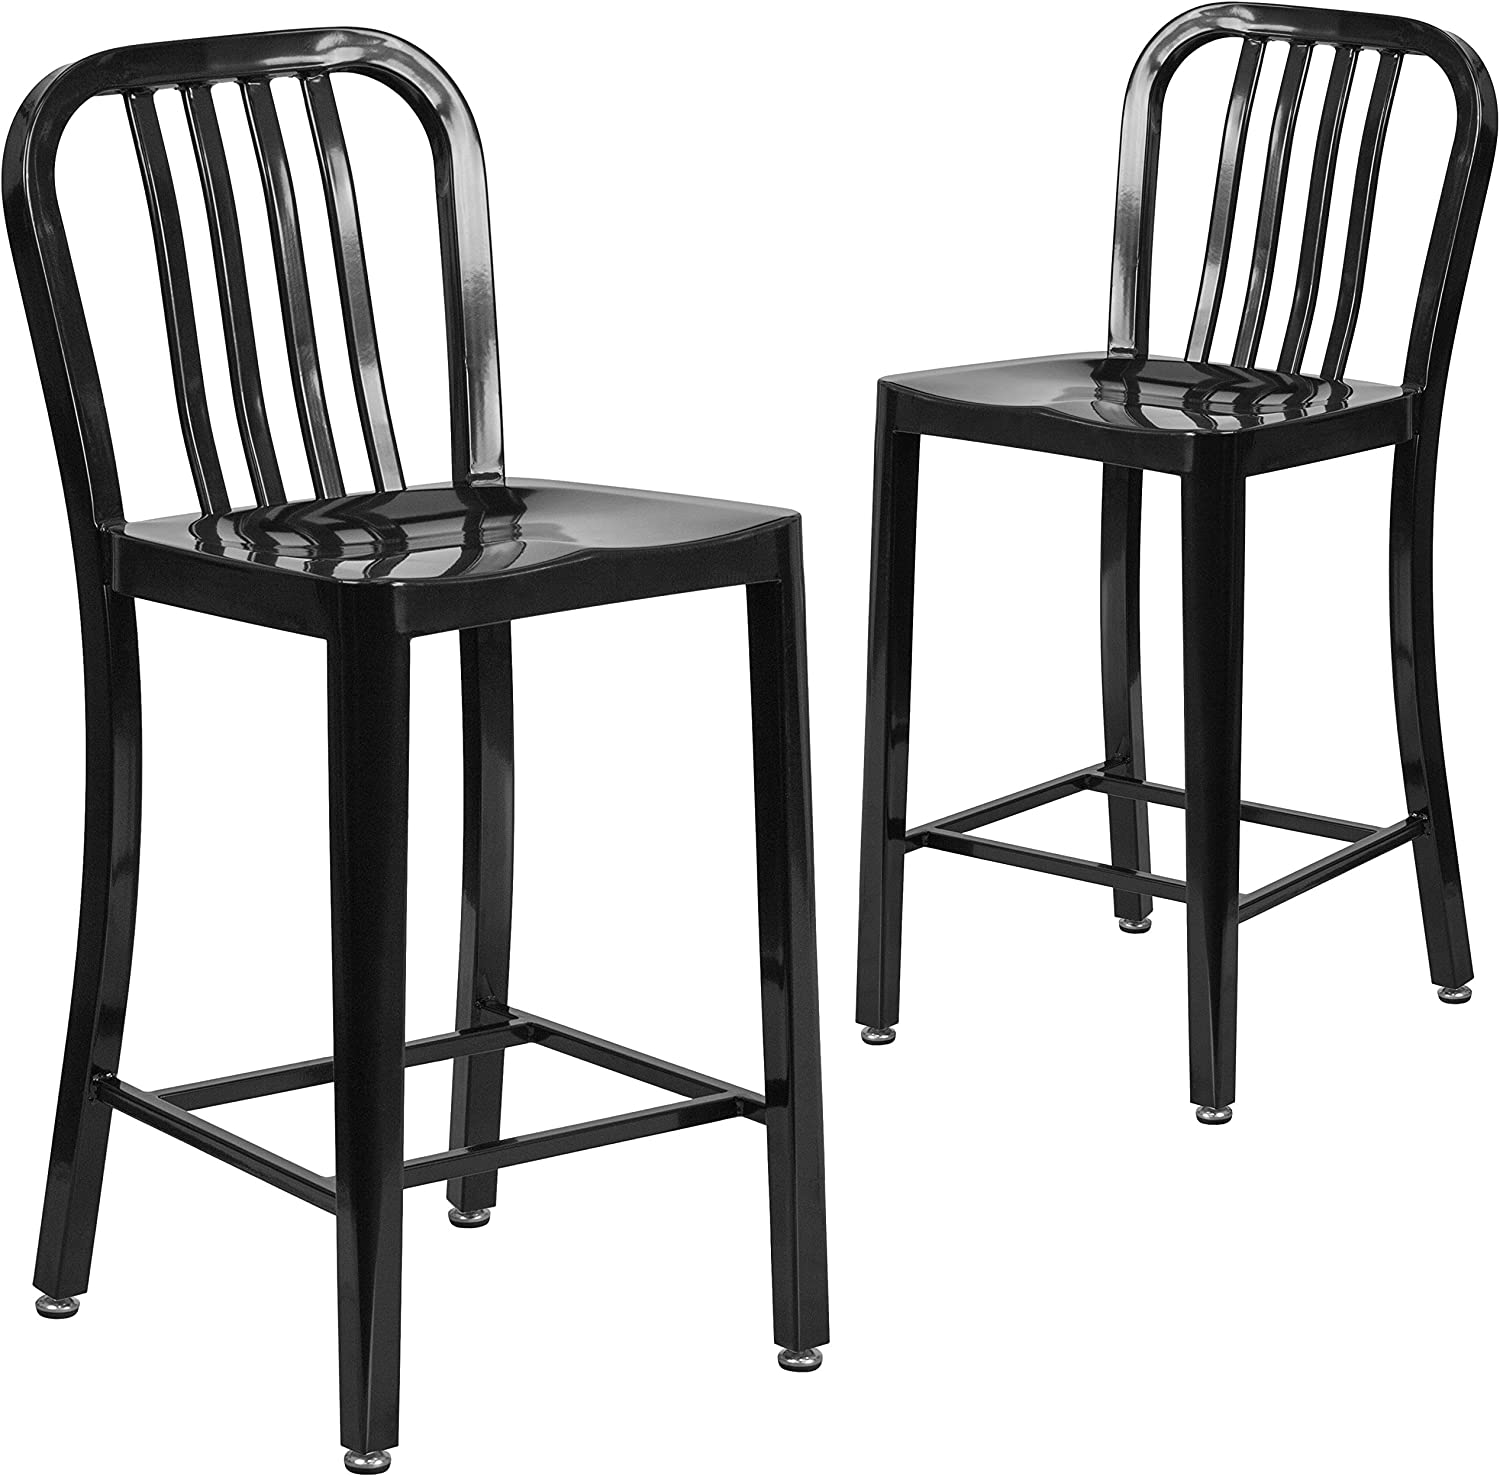 "Flash Furniture 2 Pack 24"" High Black Metal Indoor-Outdoor Counter Height Stool with Vertical Slat Back"